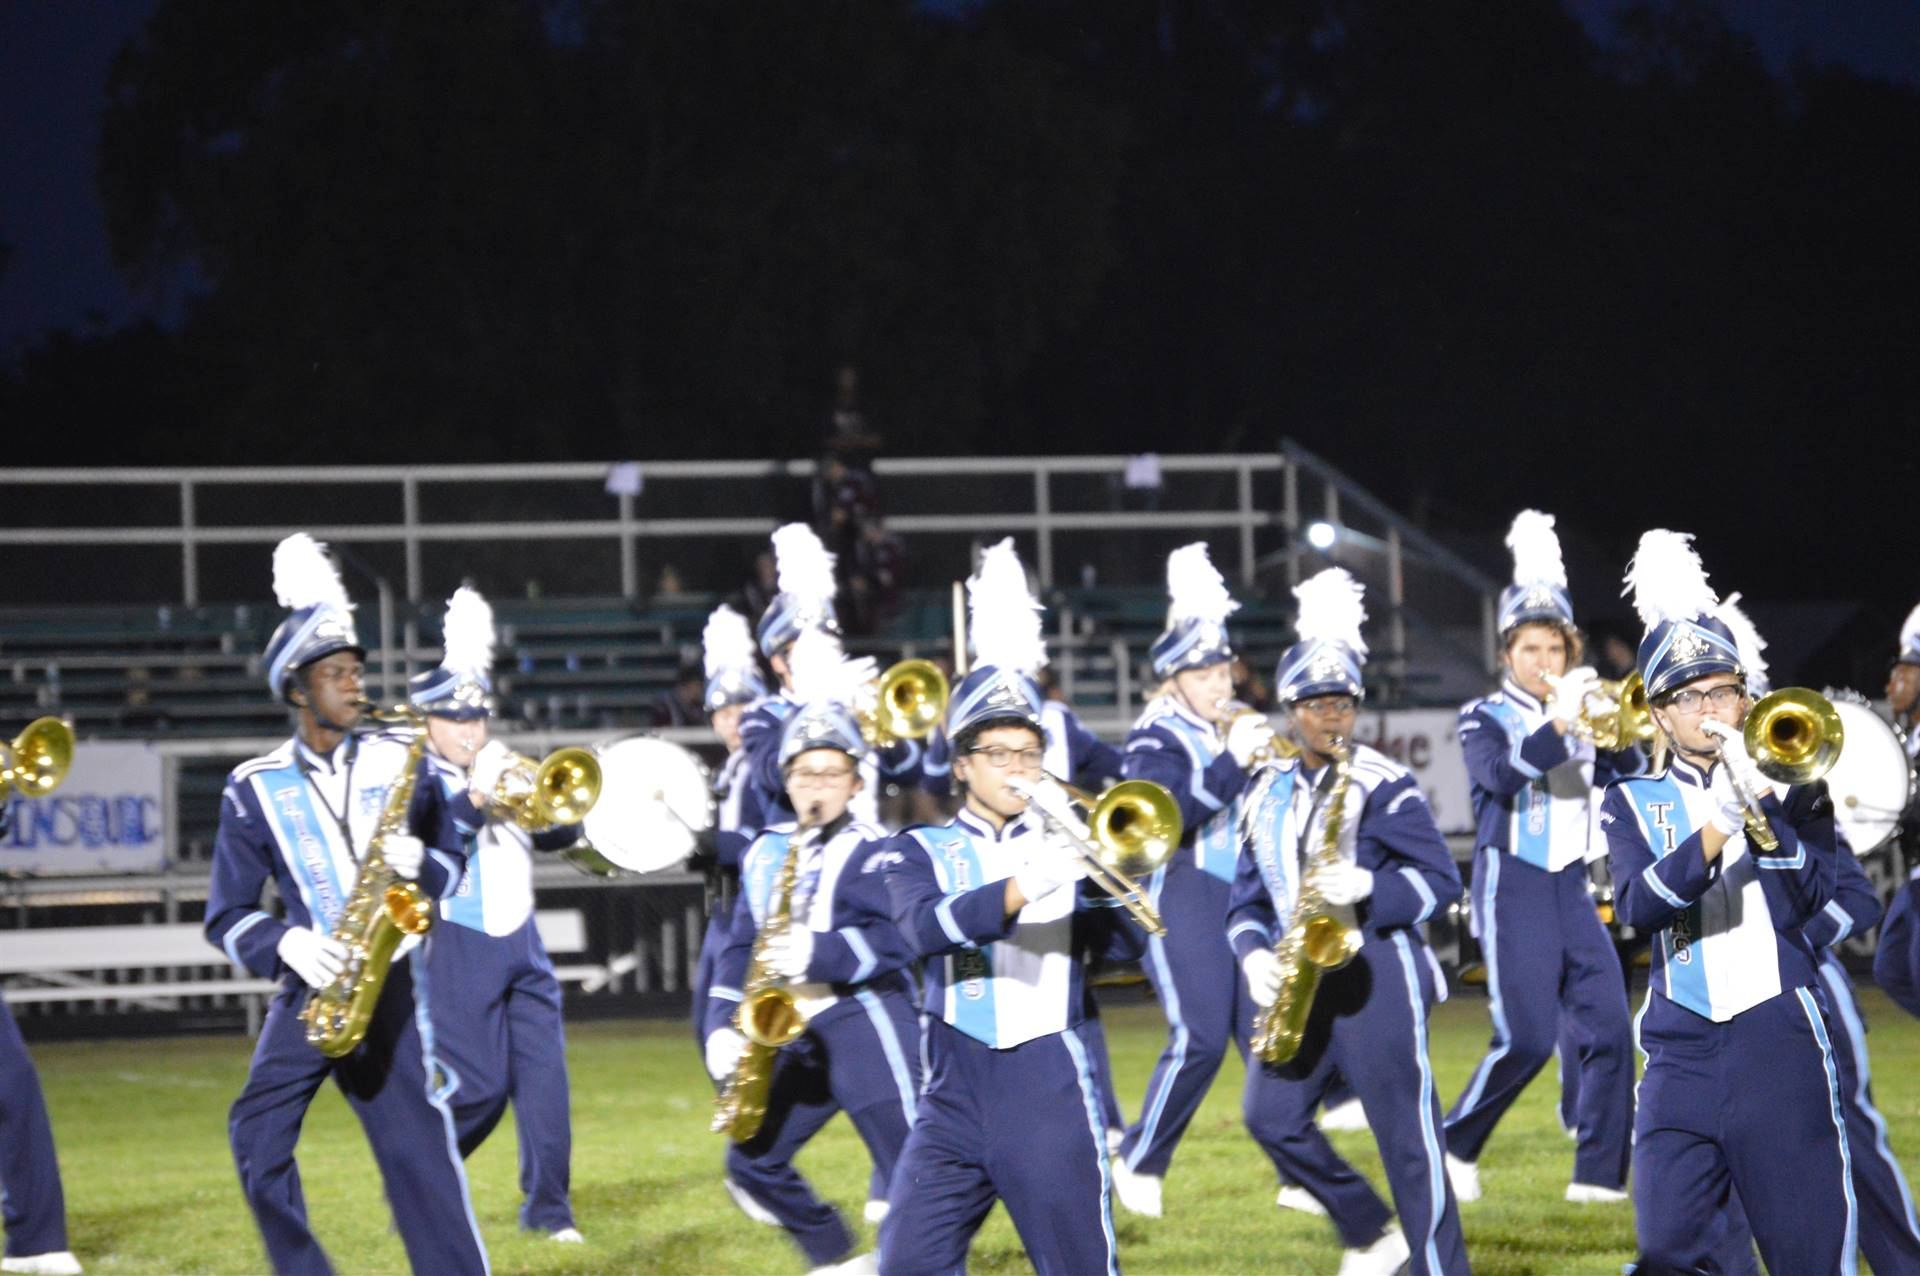 Band Students Marching at Mogadore Band Show